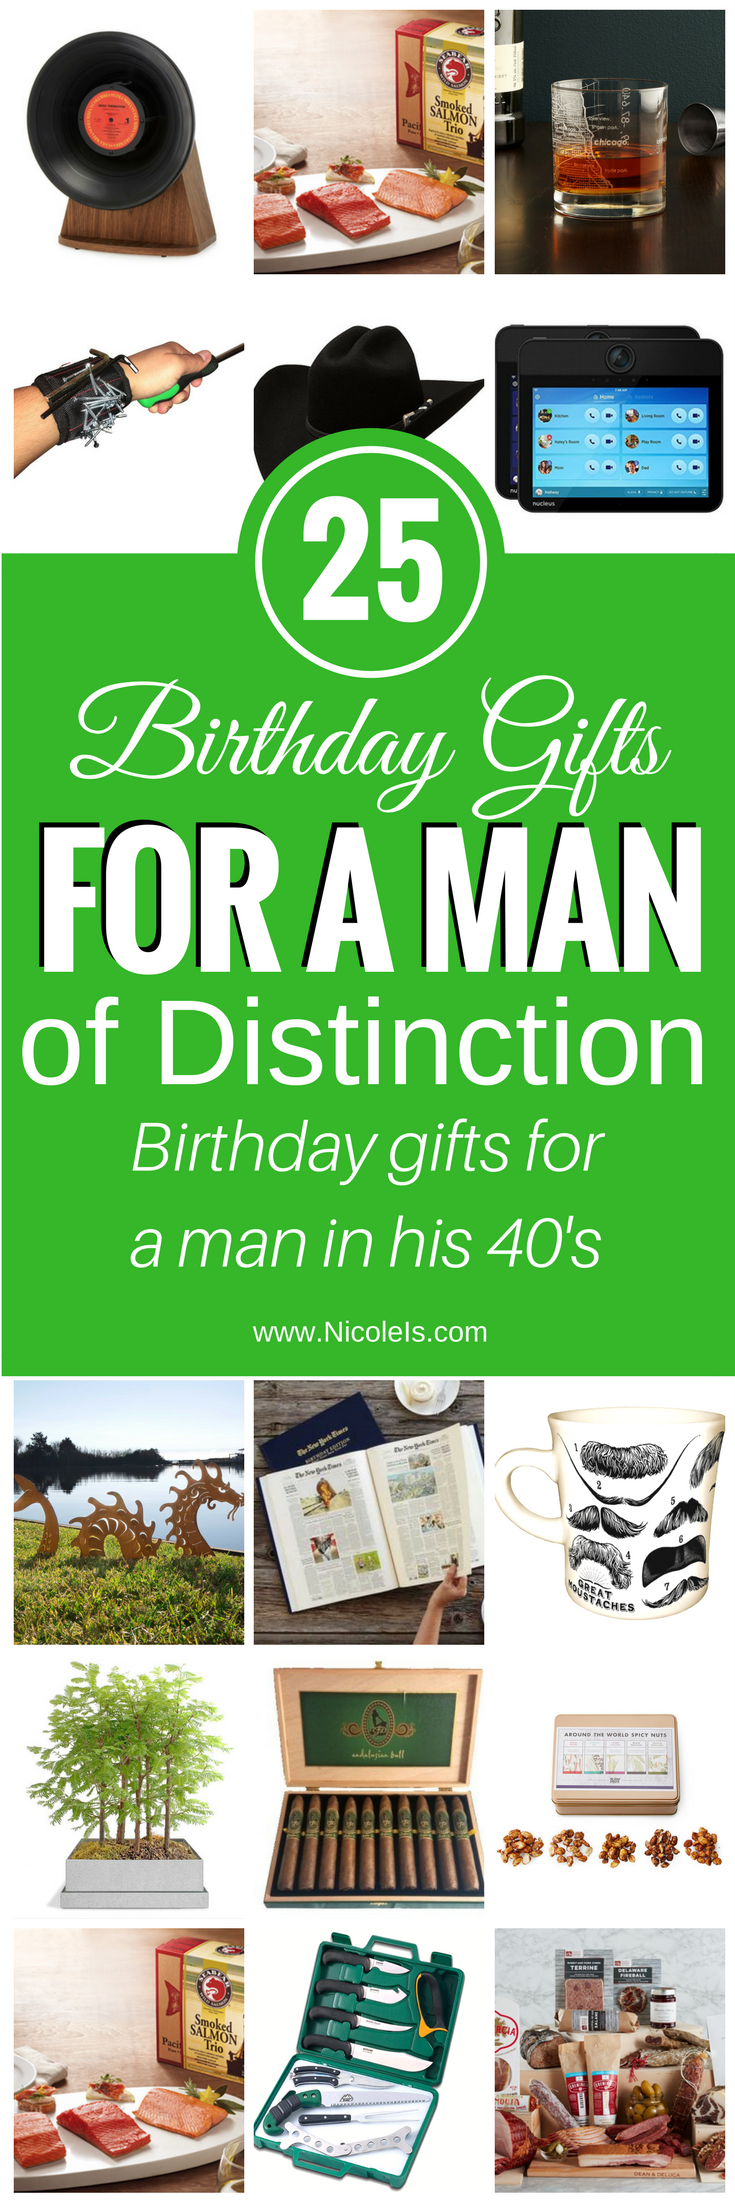 25 Birthday Gifts for a Man of Distinction! www.NicoleIs.com Gifts for Him | Birthday Gifts for Him | Anniversary Gifts for Him | Valentine's Day Gifts for Him | Birthday gifts for Him | gifts for a man | birthday gifts | Christmas gifts for a man | birthday gifts for a guy | gifts for a guy | anniversary gifts for a man | valentine's day gifts for a man | Gifts for Boyfriend